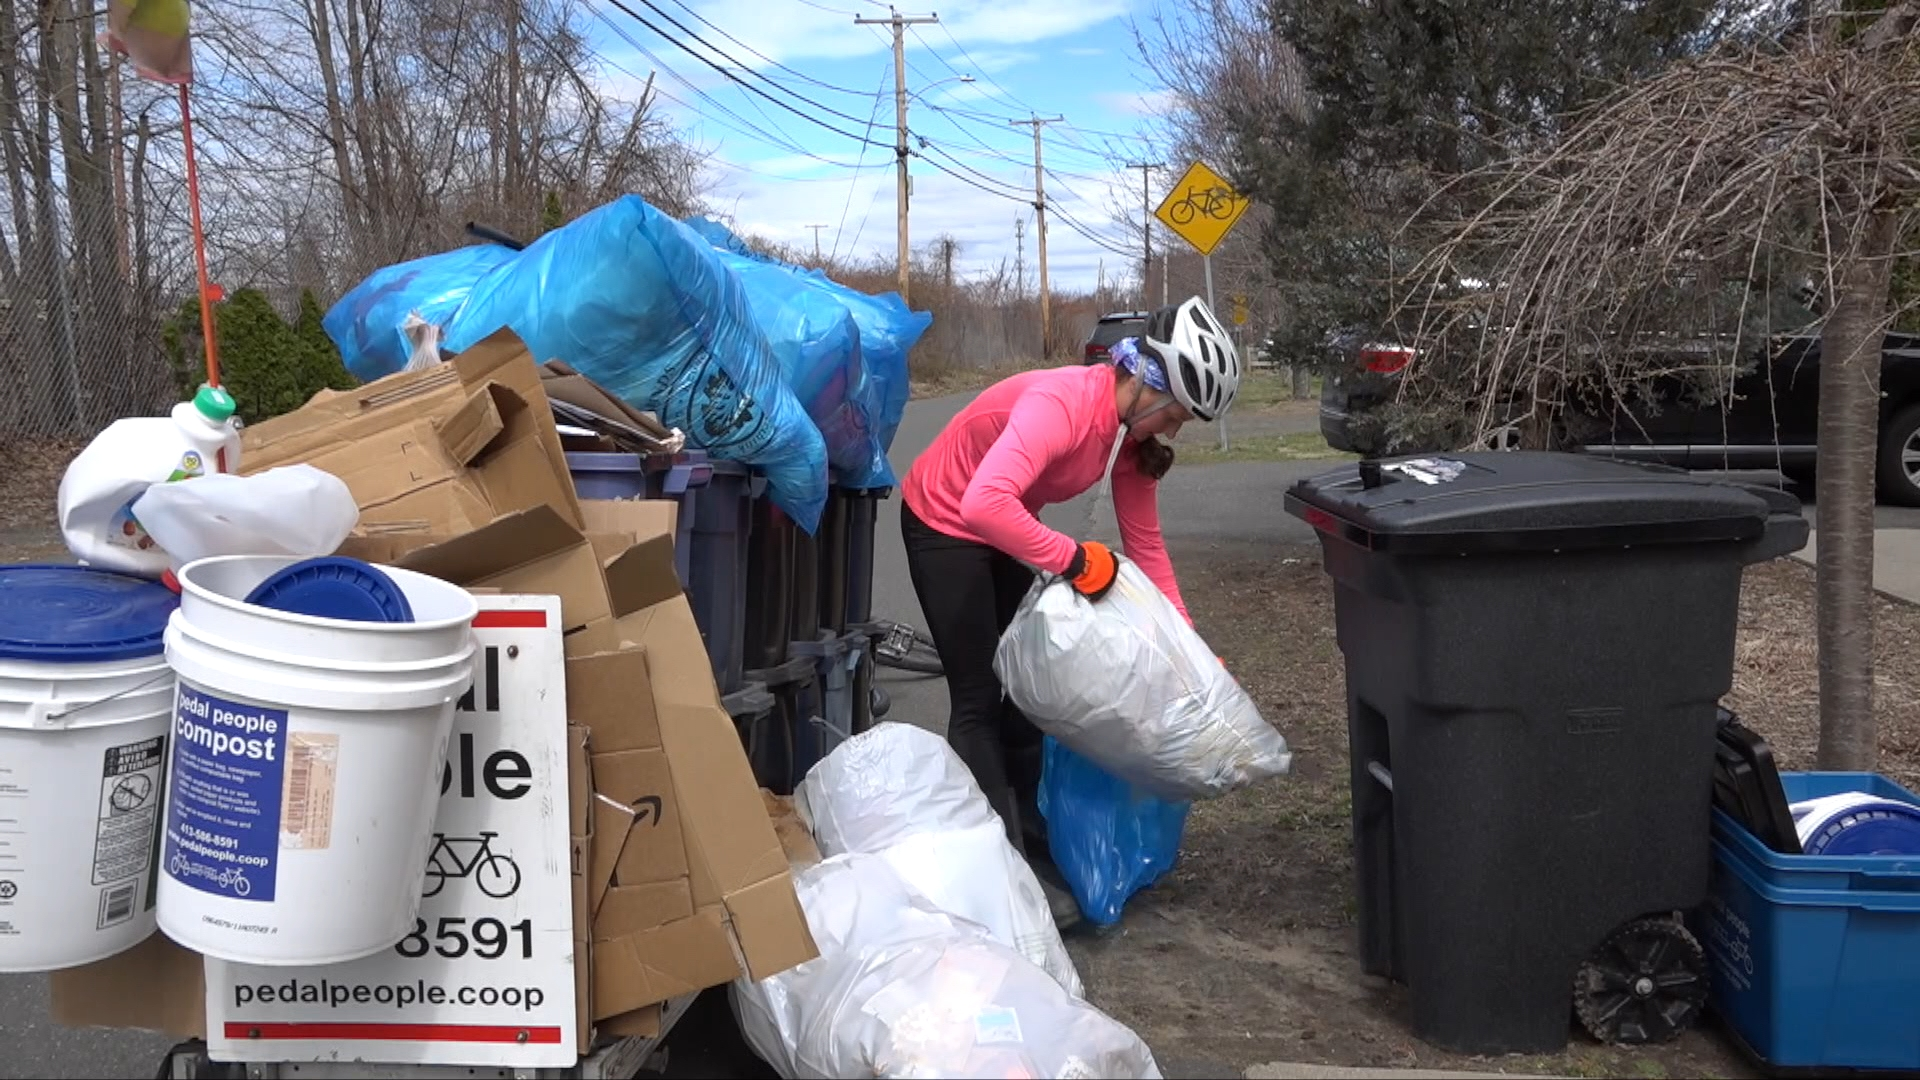 WATCH: Northampton's Pedal People are continuing to provide the community with trash and recycling services when most residents are sheltering in place.